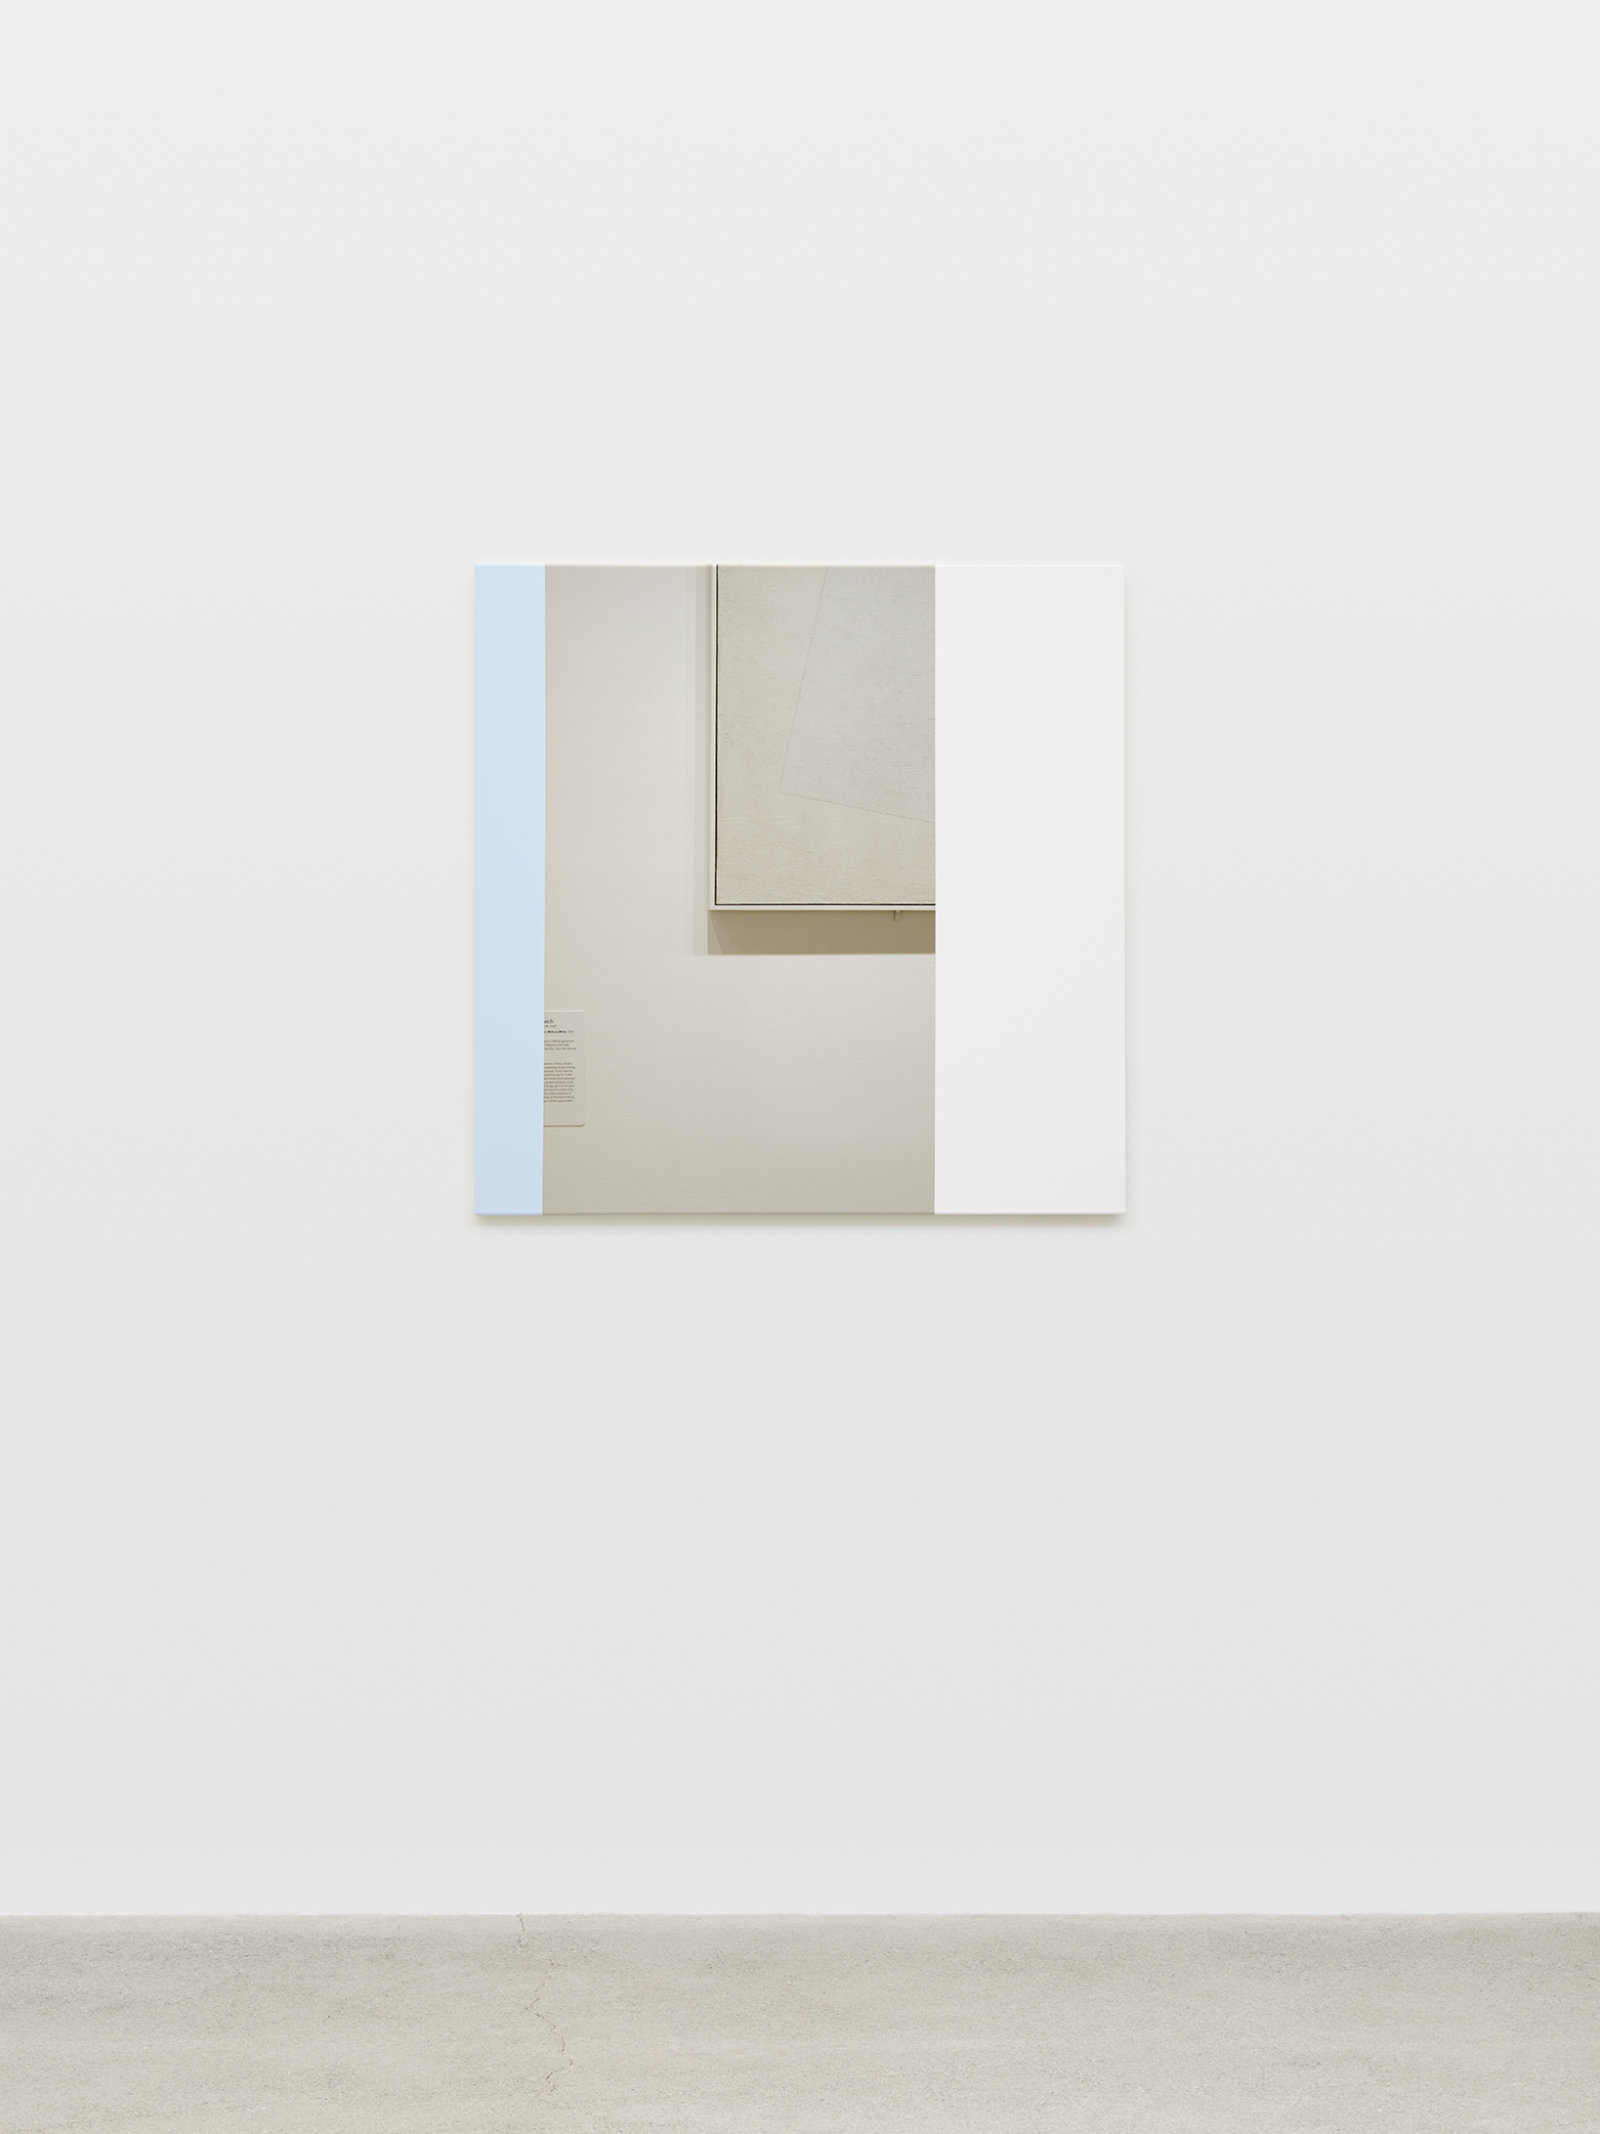 Ian Wallace, Abstract Painting (MOMA NYC) II, 2009, photolaminate with acrylic on canvas, 36 x 36 in. (91 x 91 cm)